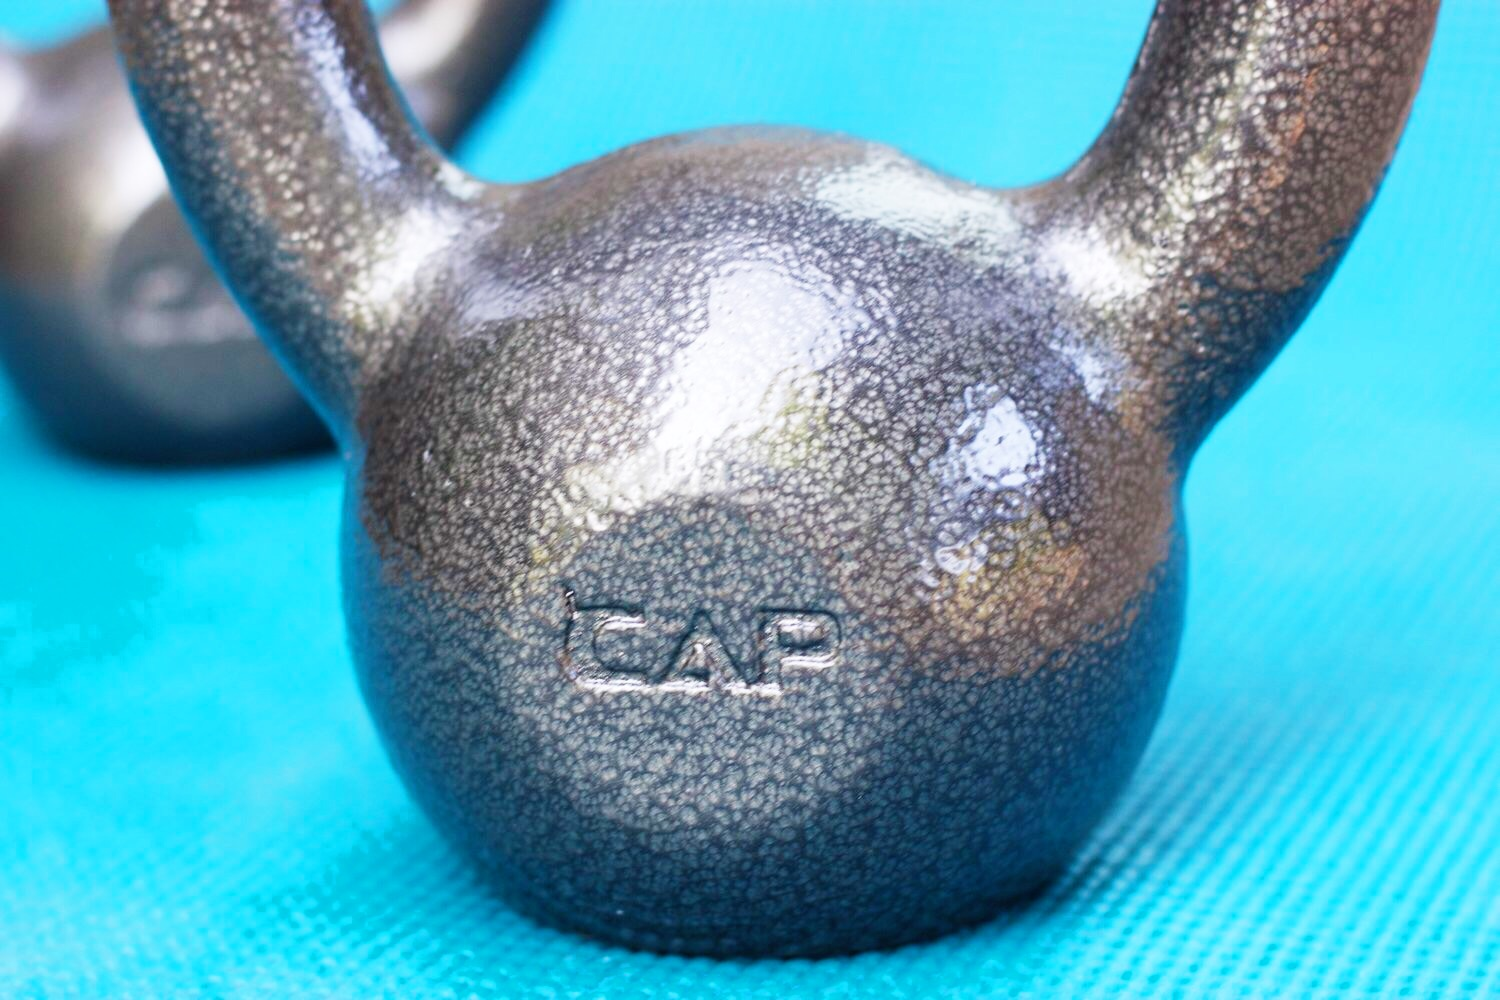 for more of our kettlebell workouts - click here